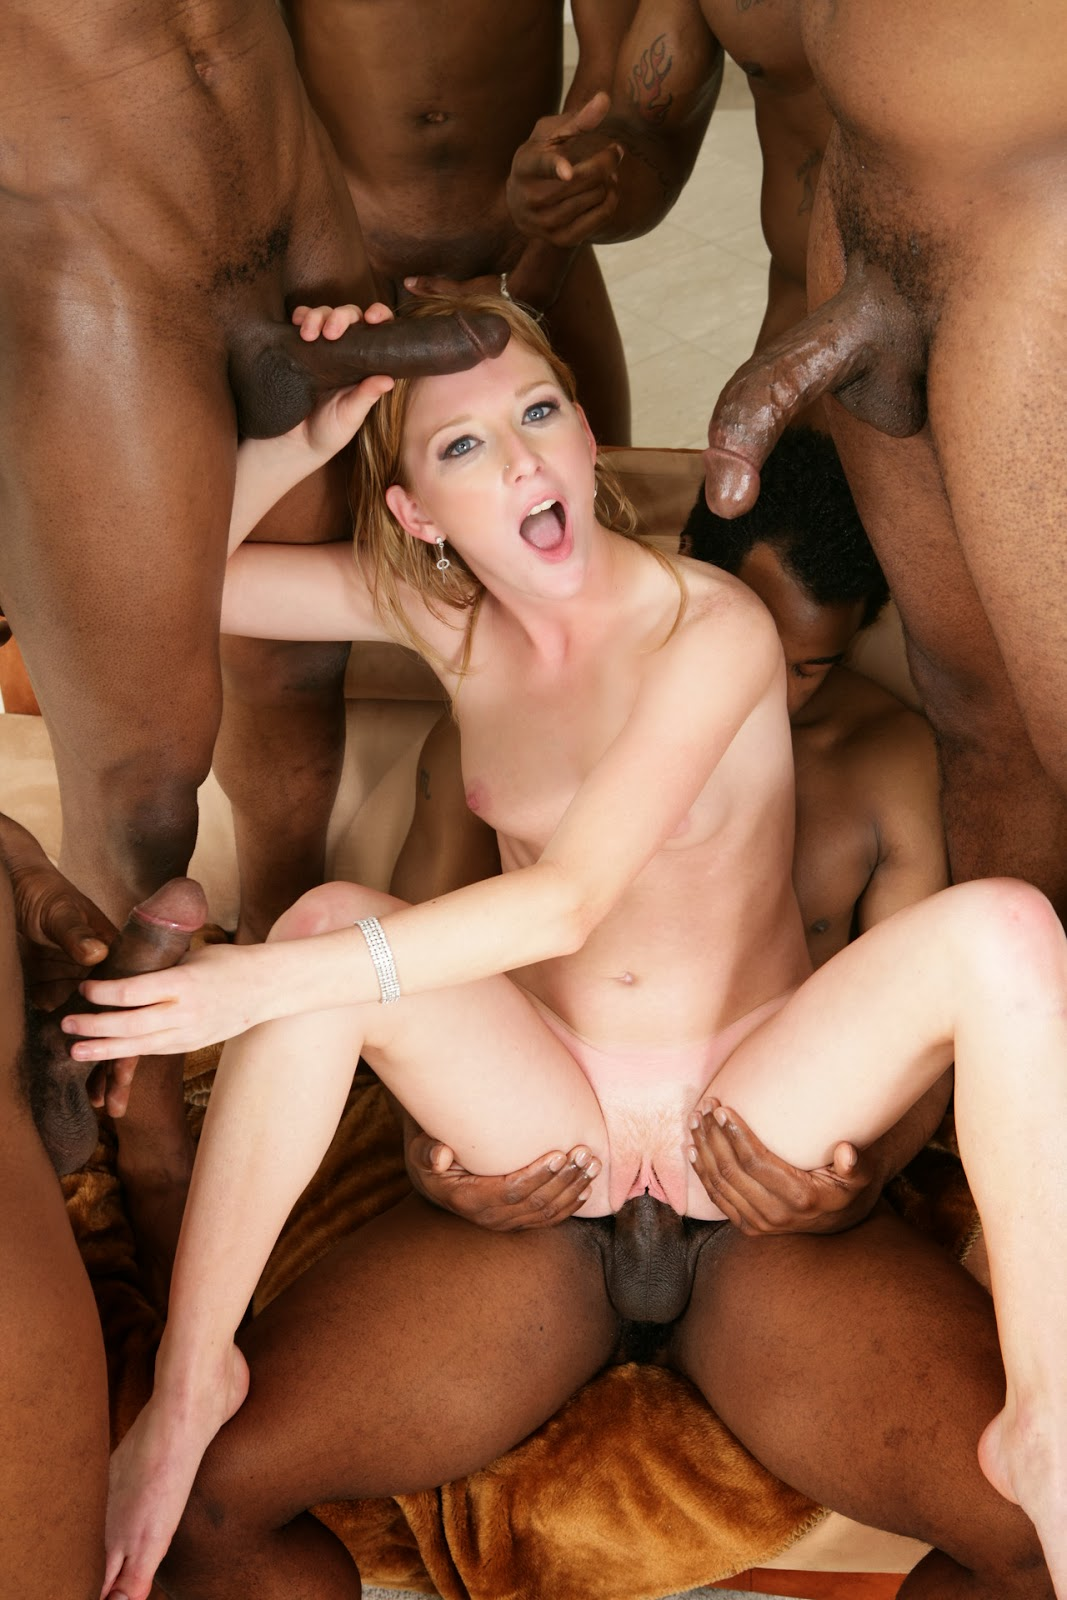 Black on black gangbang